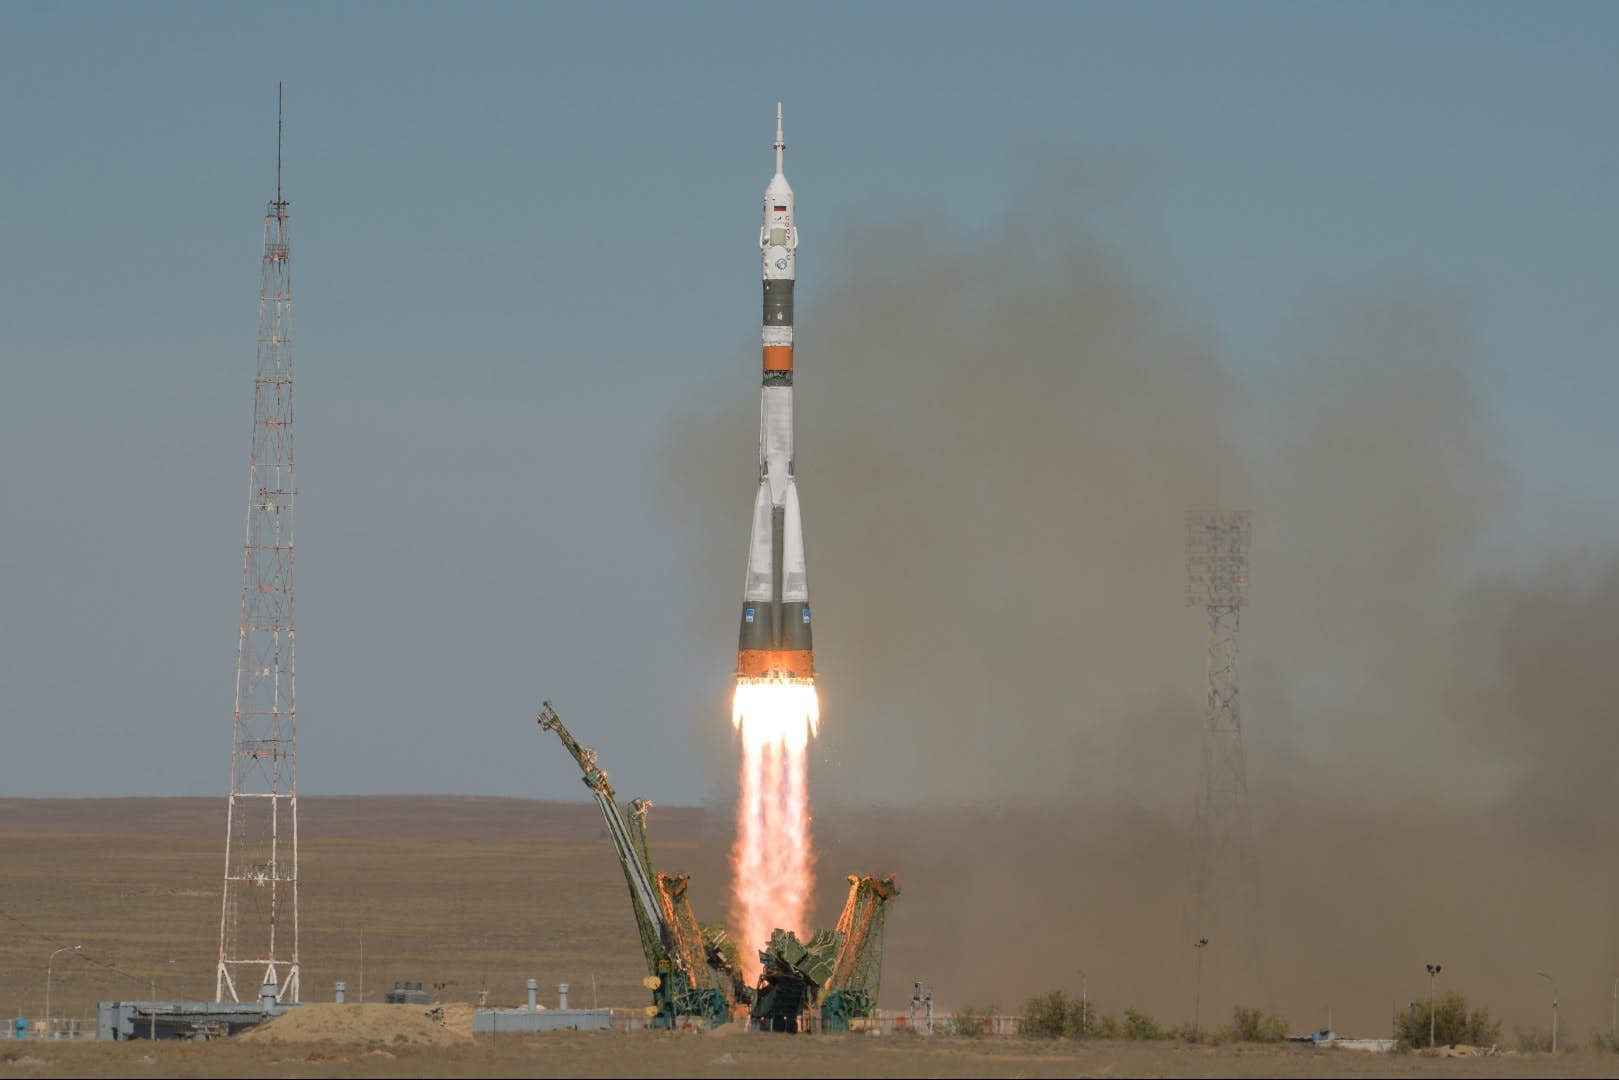 Rocket Malfunction Forces Astronauts To Make An Emergency Landing